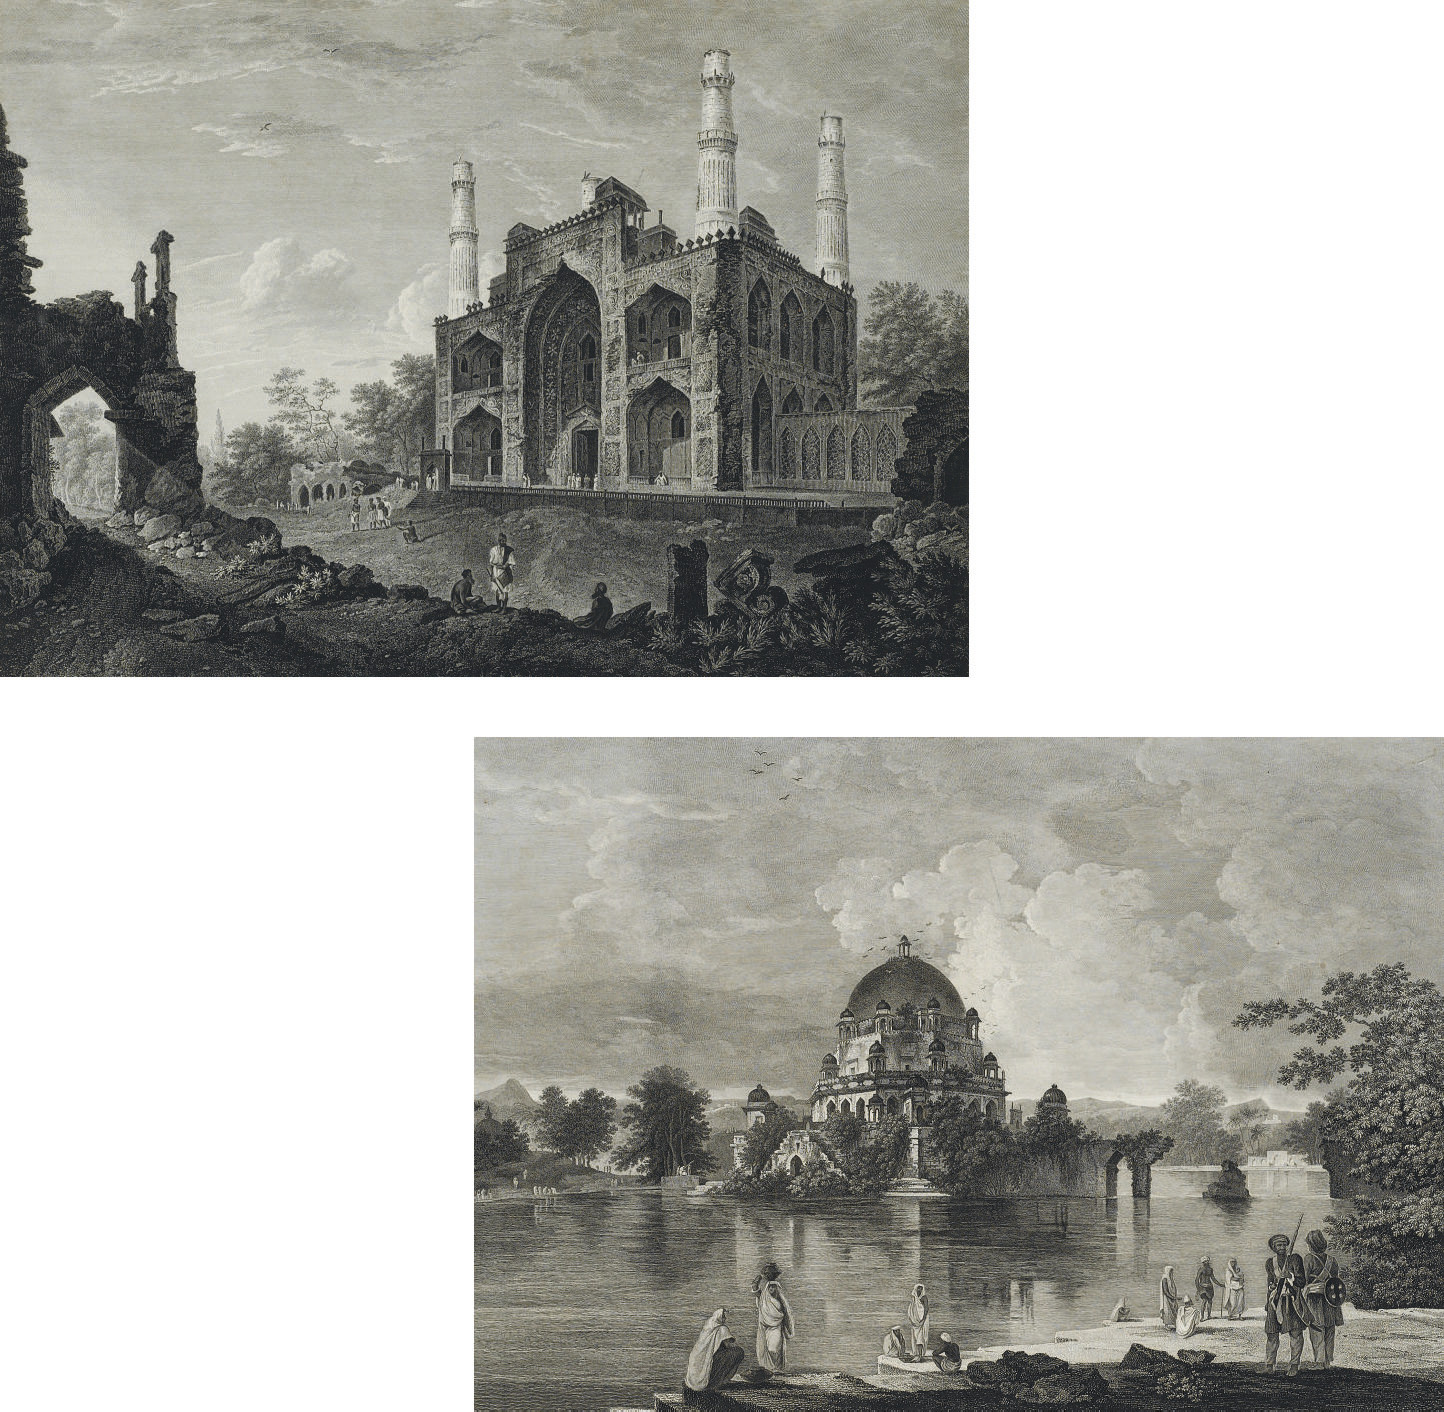 A View of the Tomb of the Emperor Shere Shah at Sasseram in Bahar; and a View of the Gate of the Tomb of the Emperor Akber at Secundra, by Morris and Browne